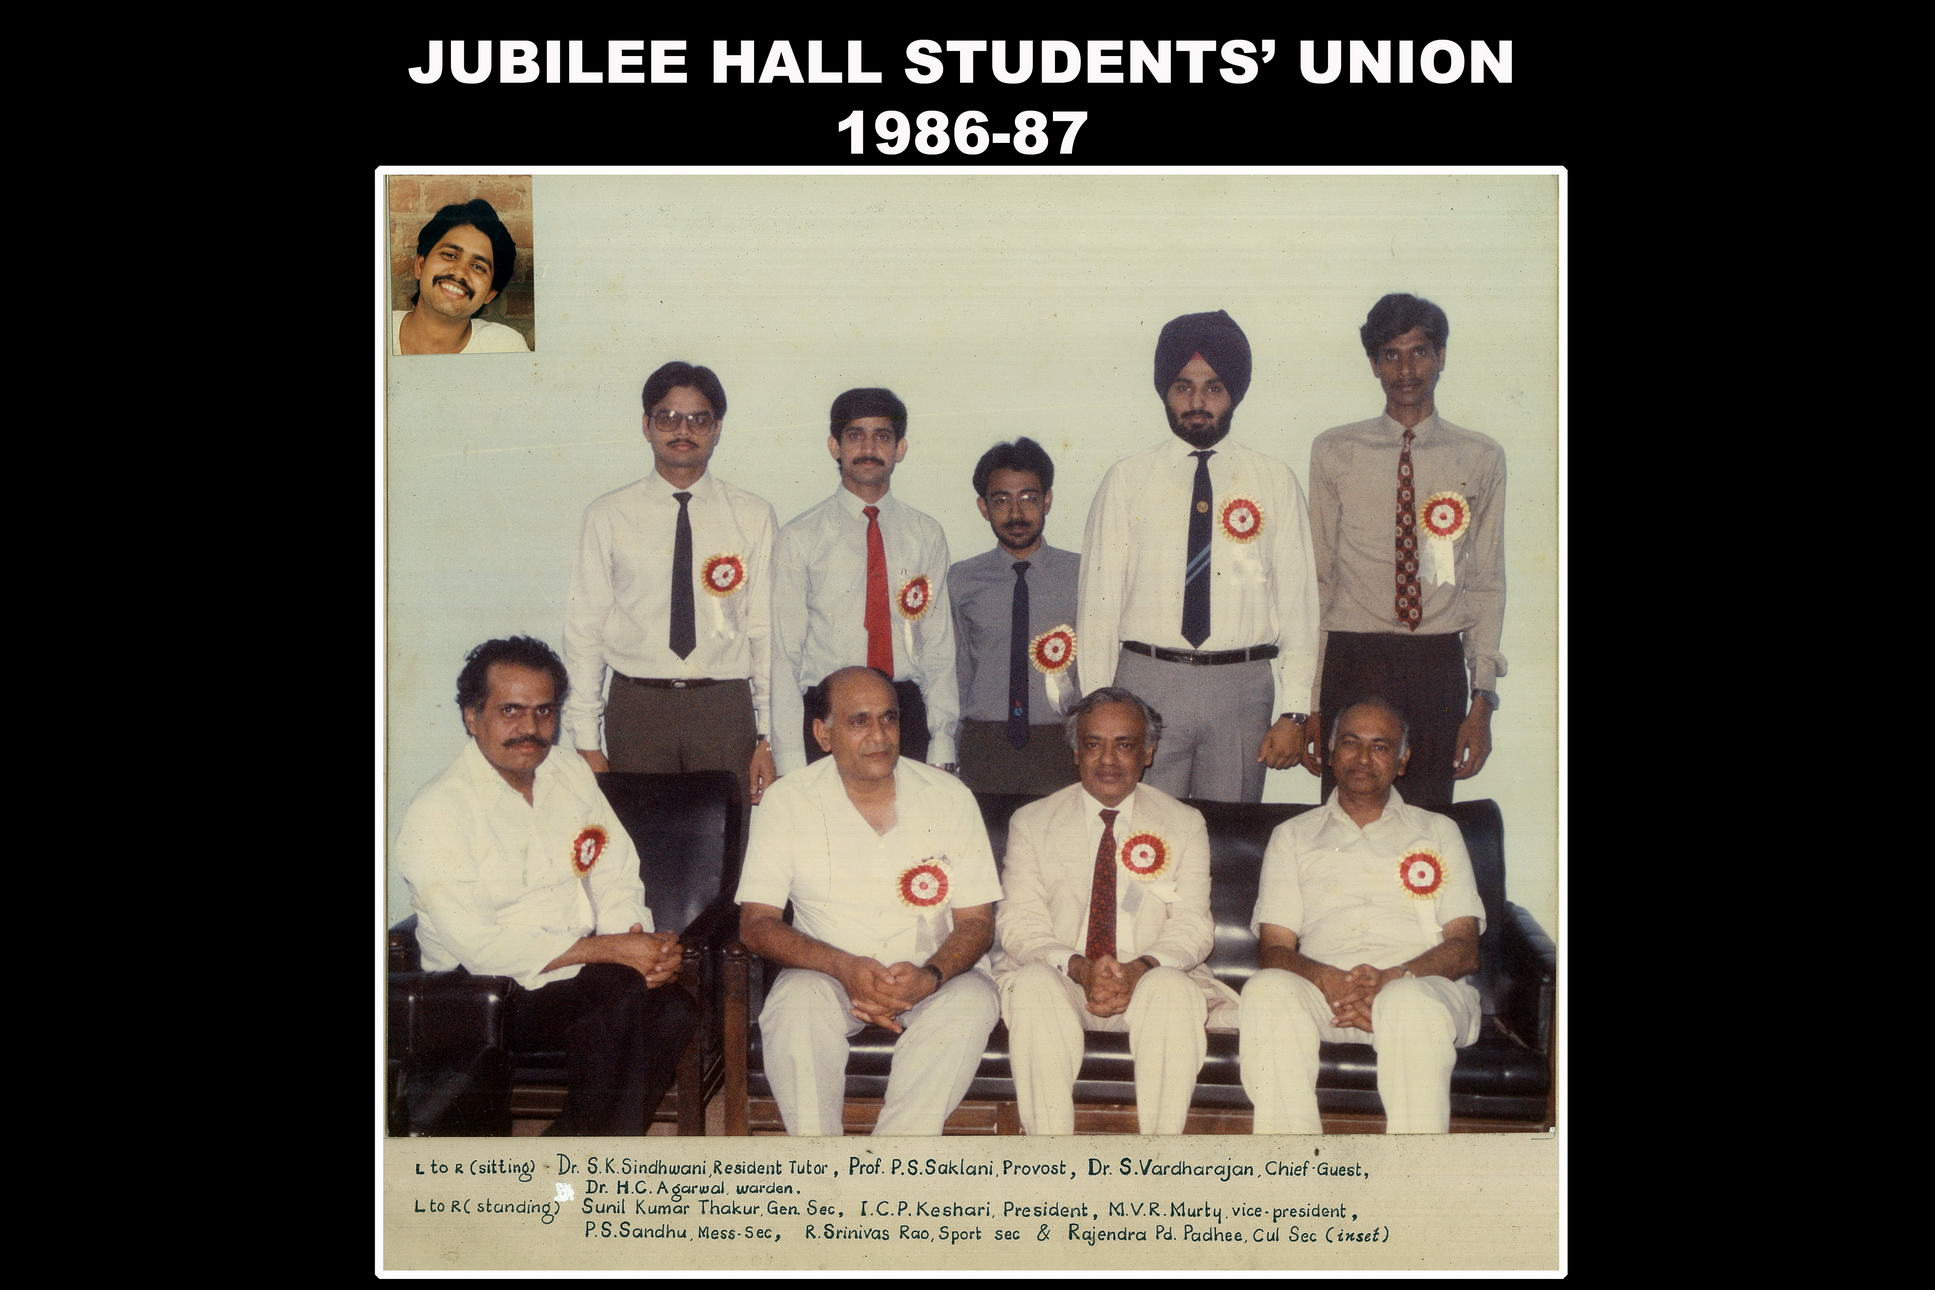 images/gallery/museum//1986-87  Student Union_resize.jpg